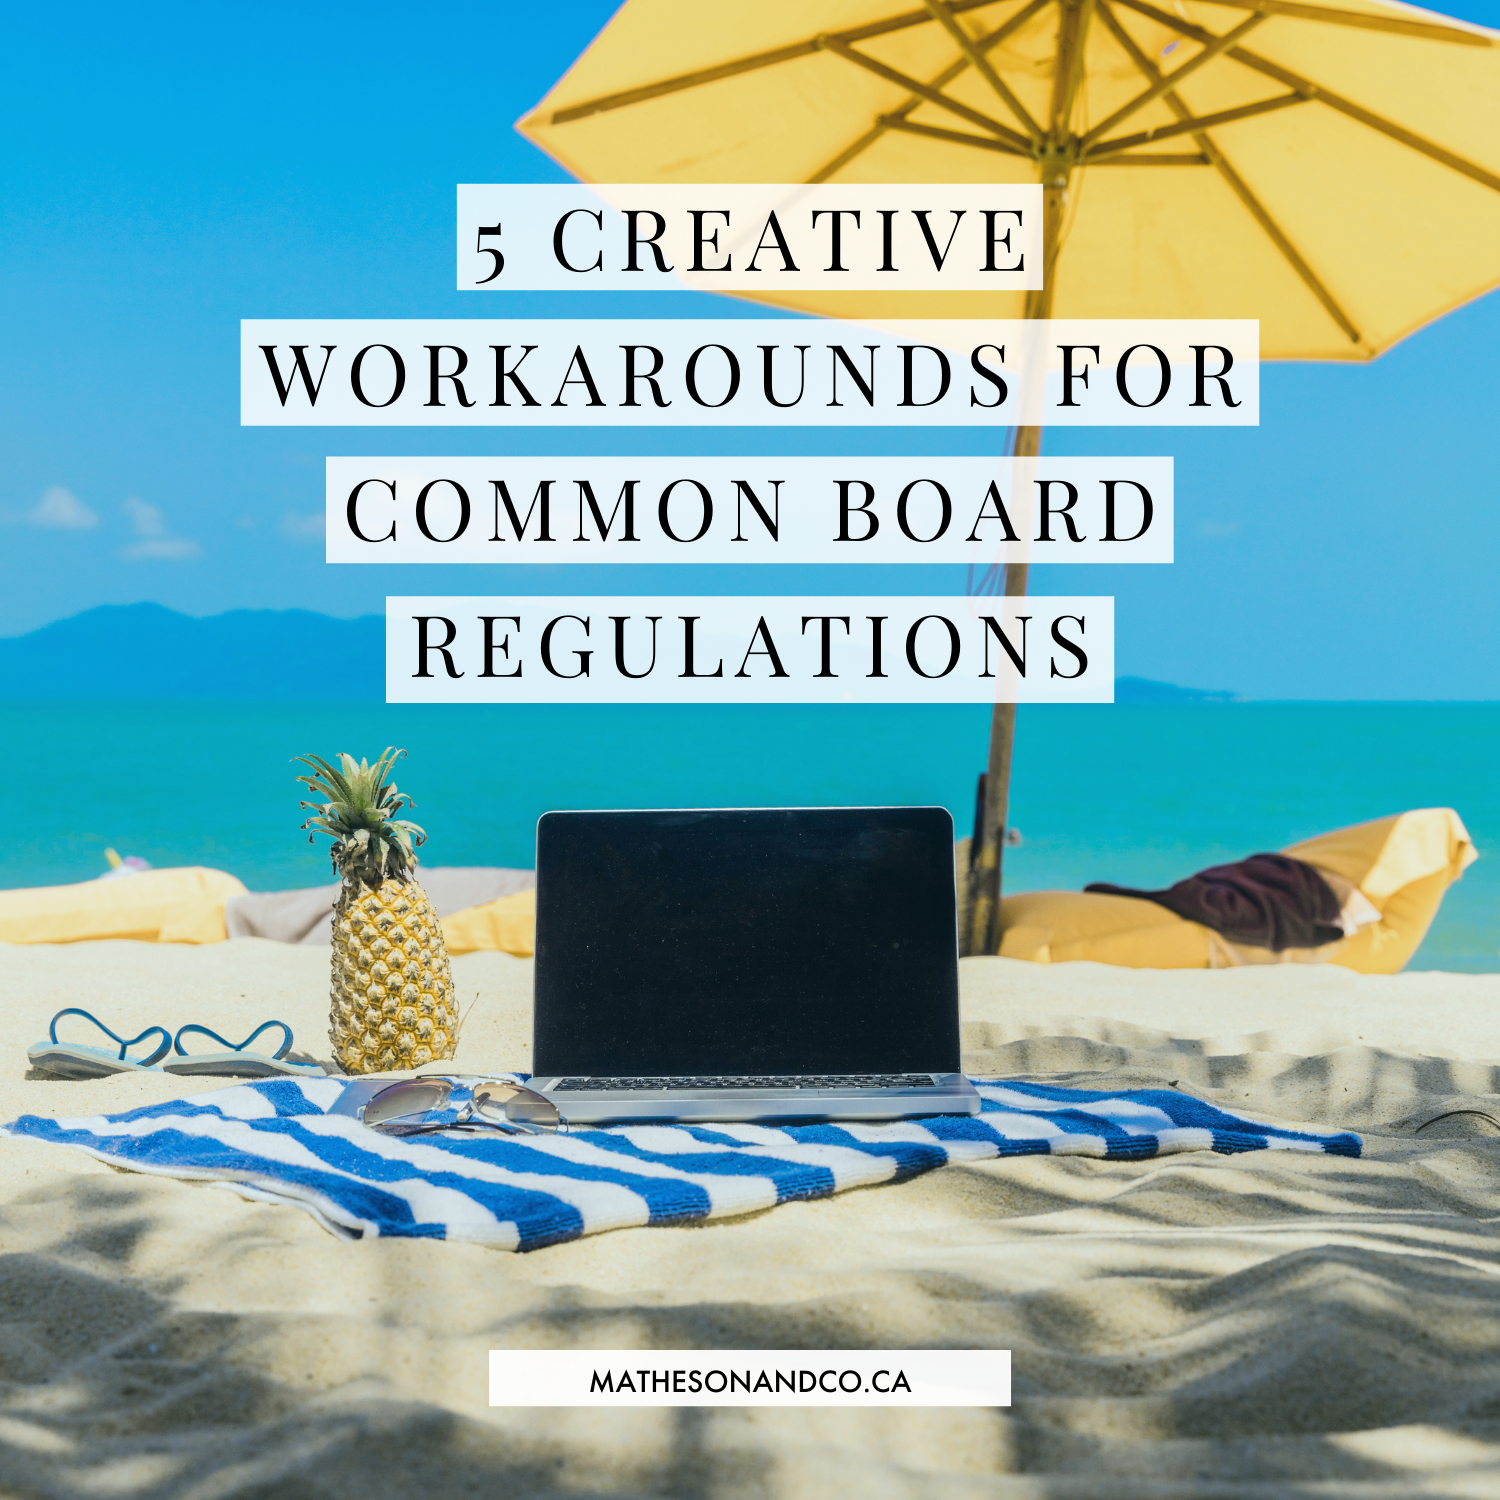 5 Creative Workarounds for Common Board Regulations